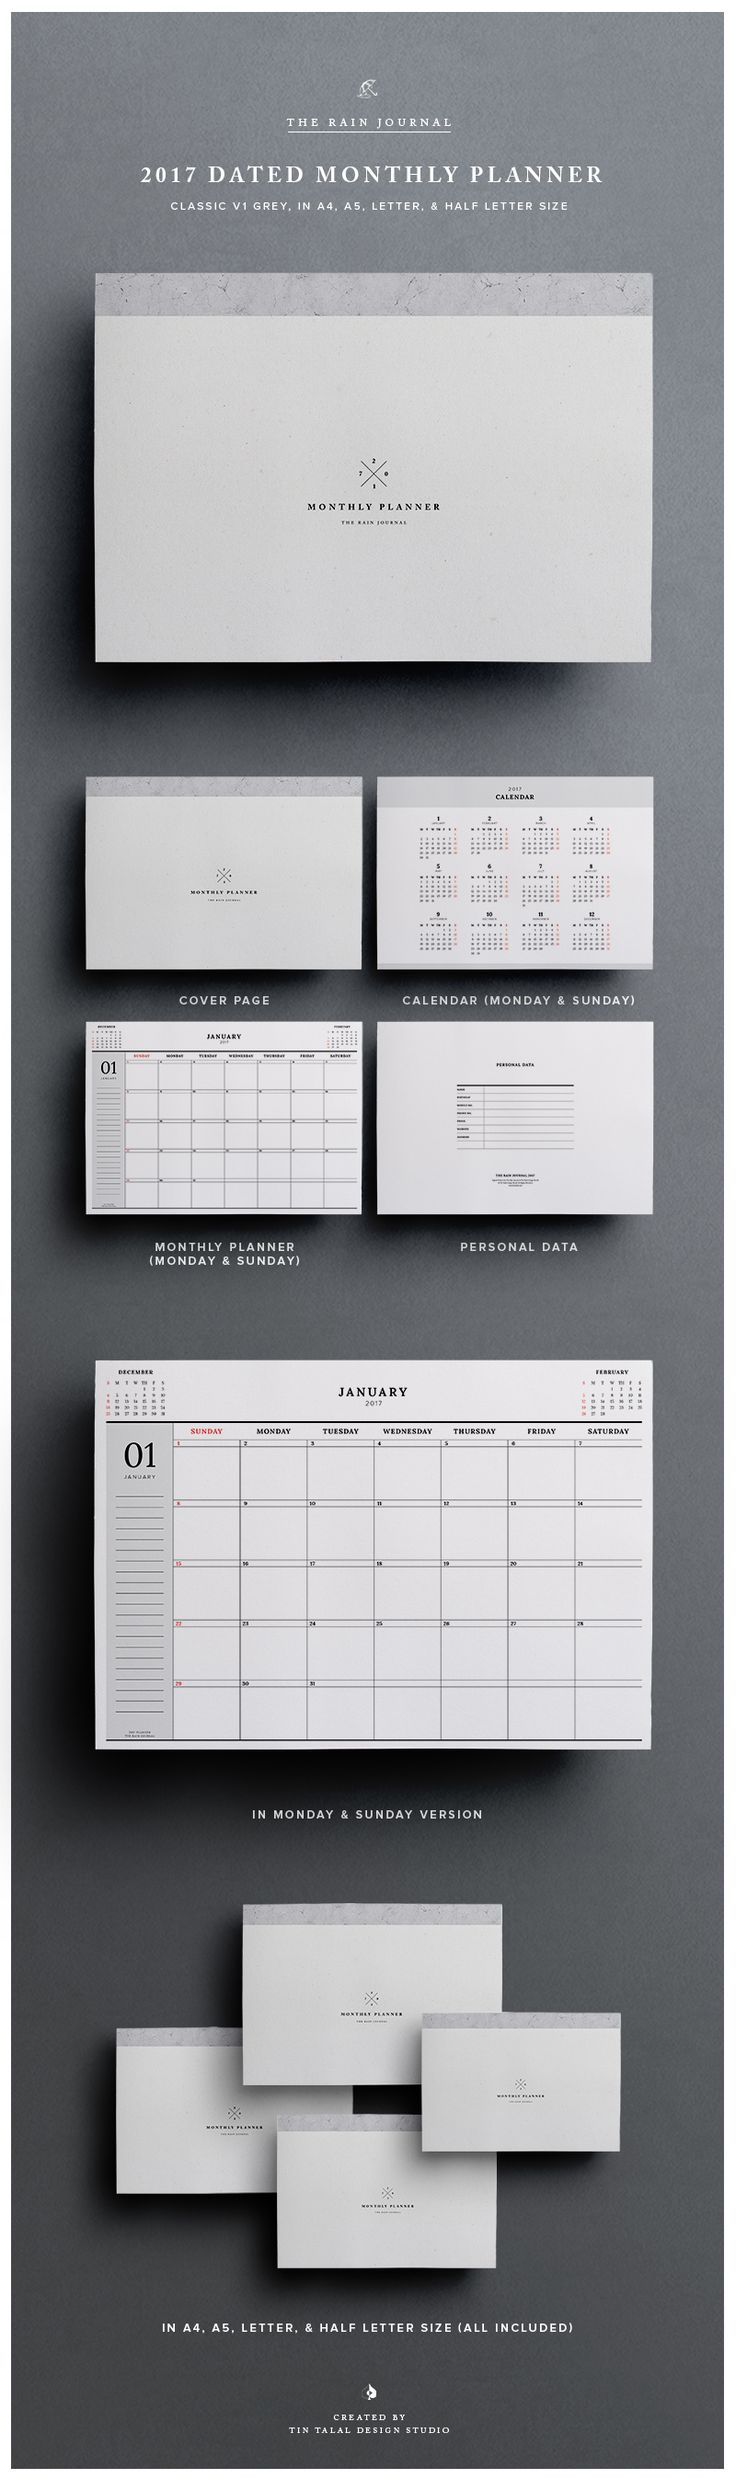 2017 Dated Monthly Planner with Annual Calendar - Monday & Sunday Start Included. Desk Planner, Wall Planner, Wall Calendar, Desk Calendar